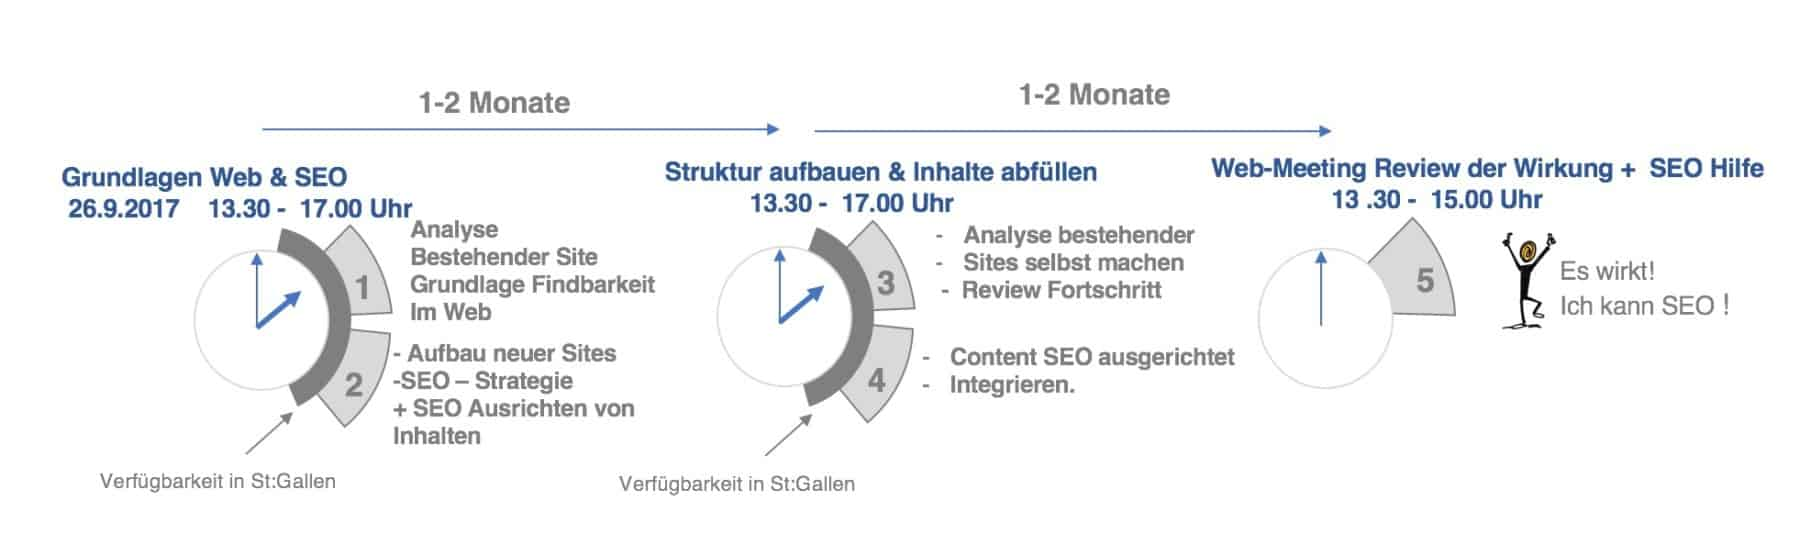 Website Relaunch SEO Workshop Programm